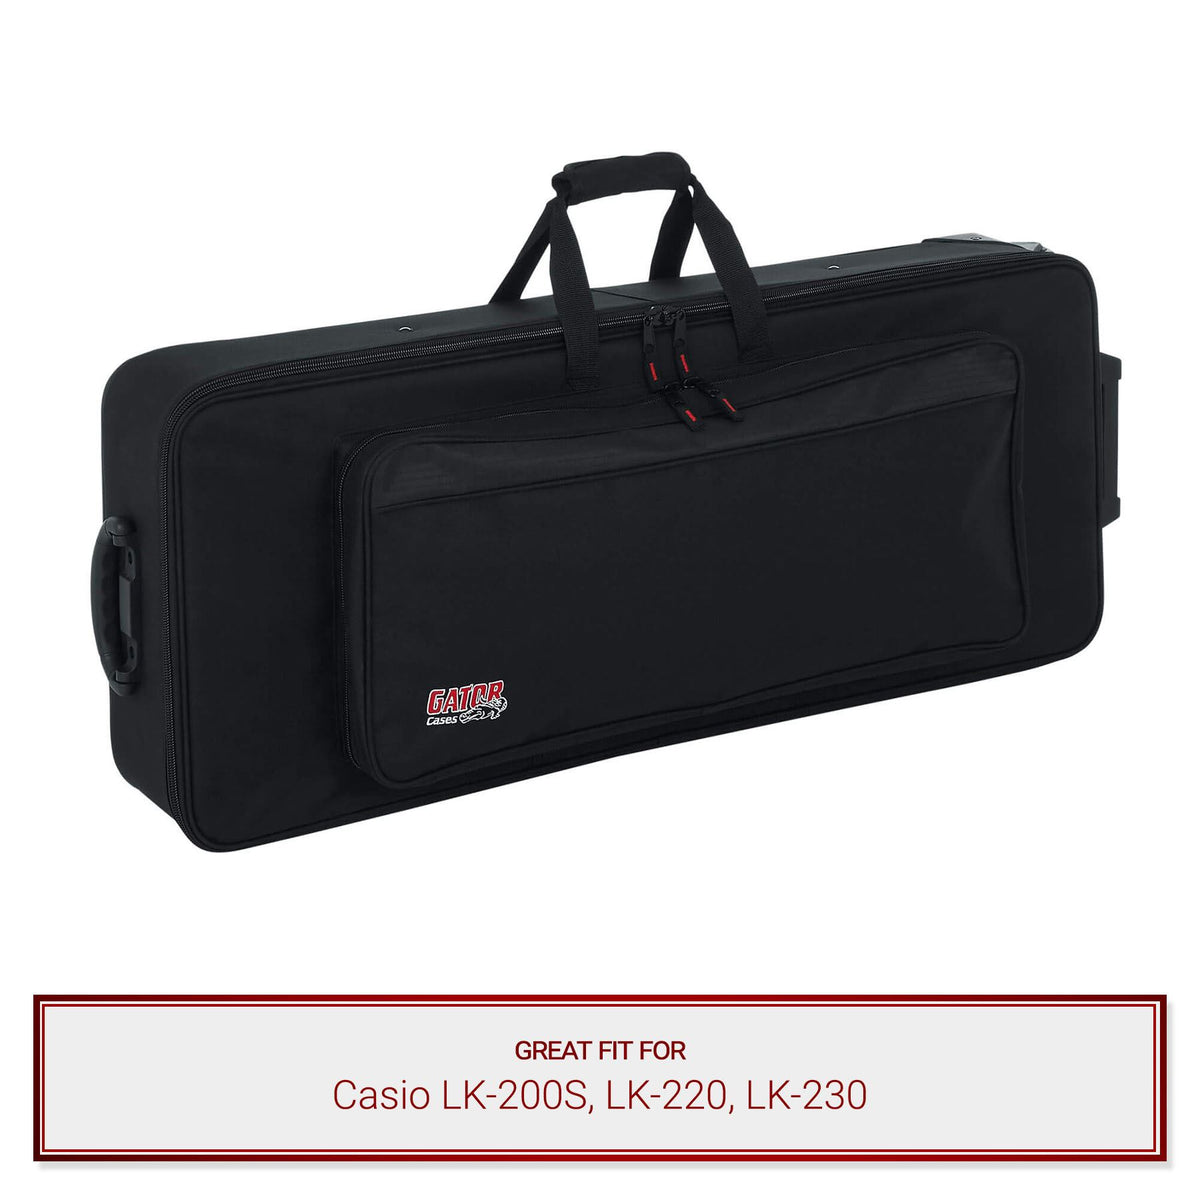 Gator Keyboard Case for Casio LK-200S, LK-220, LK-230